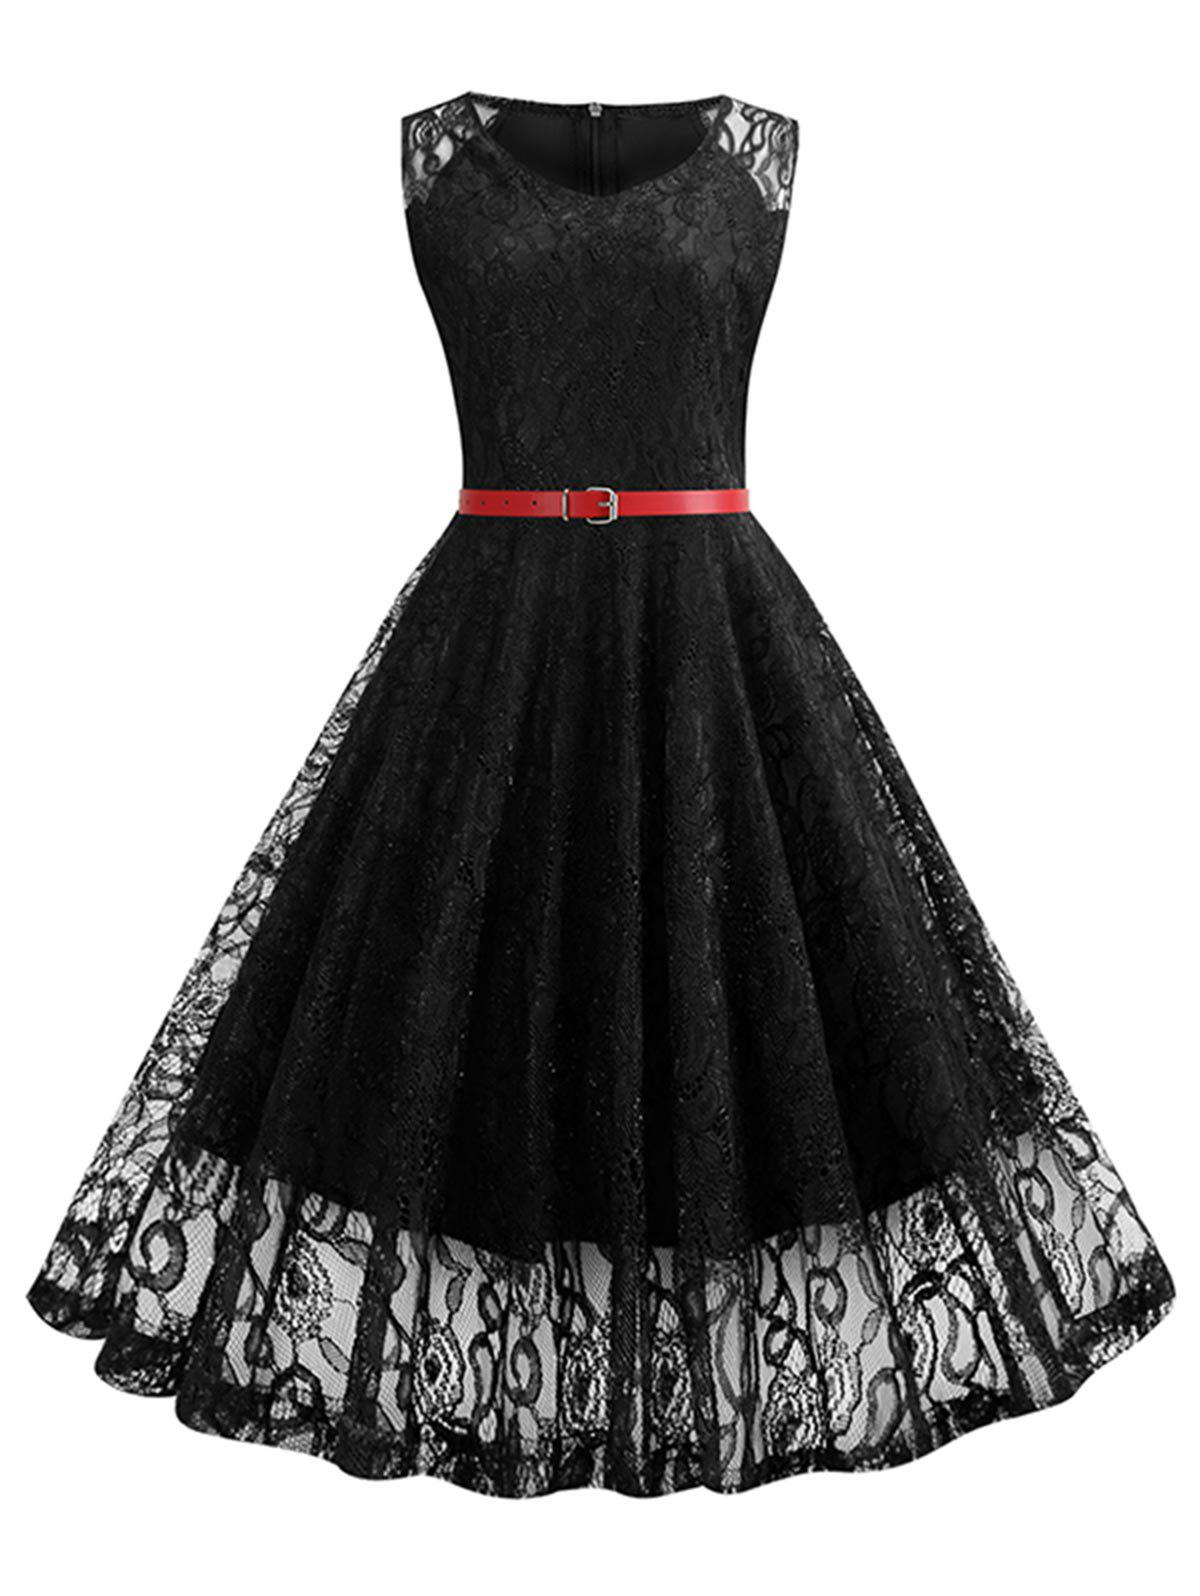 Sleeveless Belted Lace A Line Dress - BLACK M